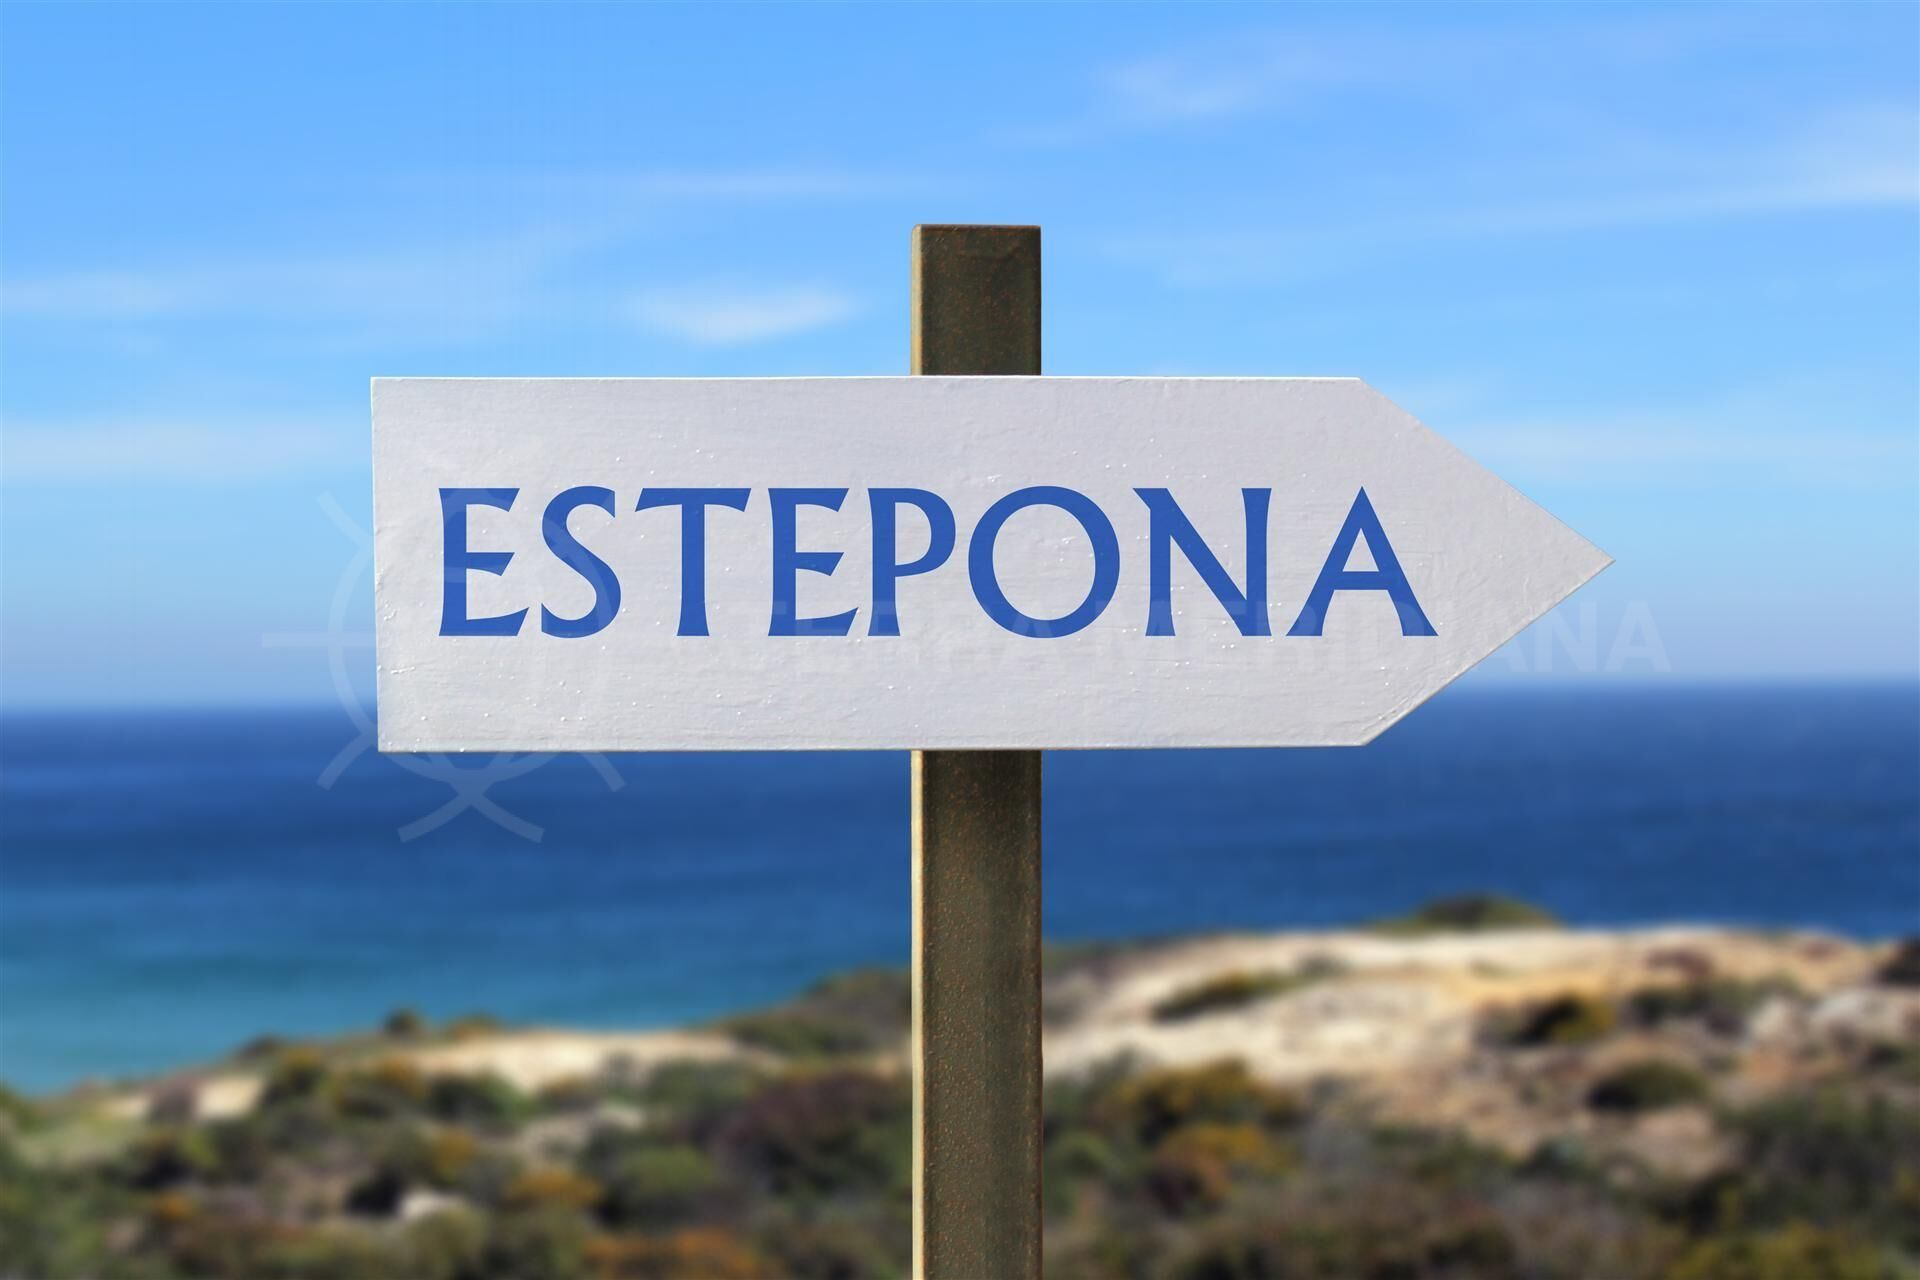 Esteponas beaches